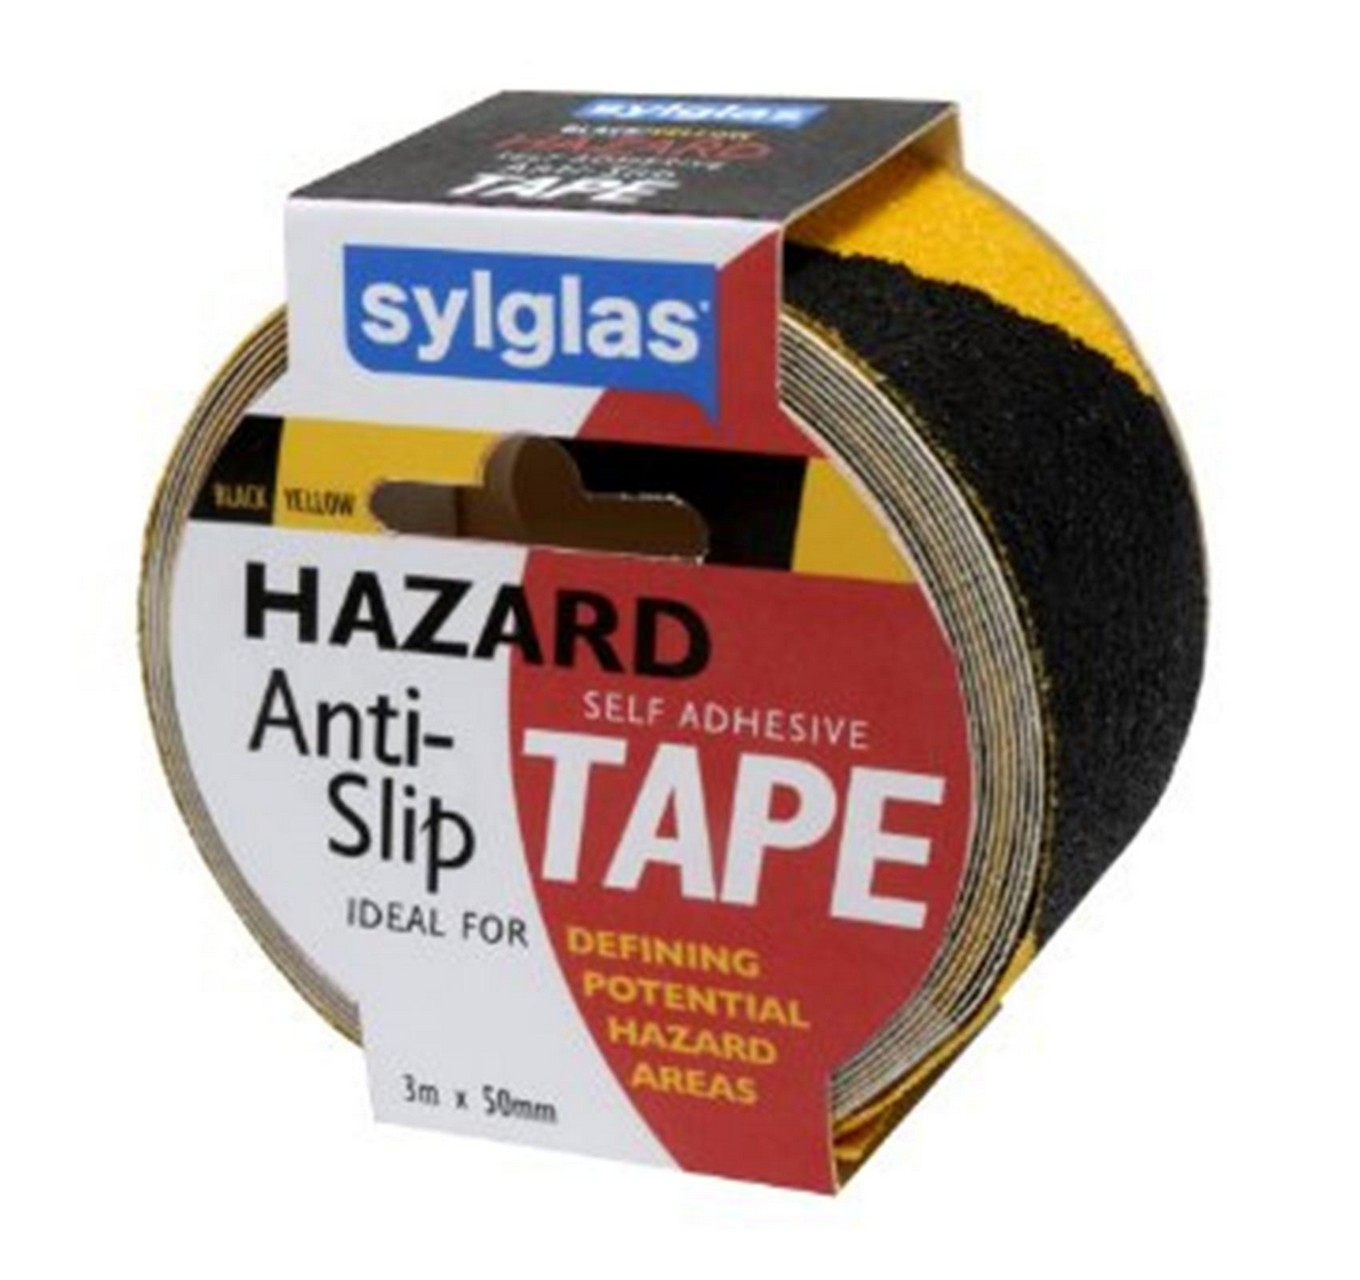 Anti-Slip Tape Hazard 3mx50mm